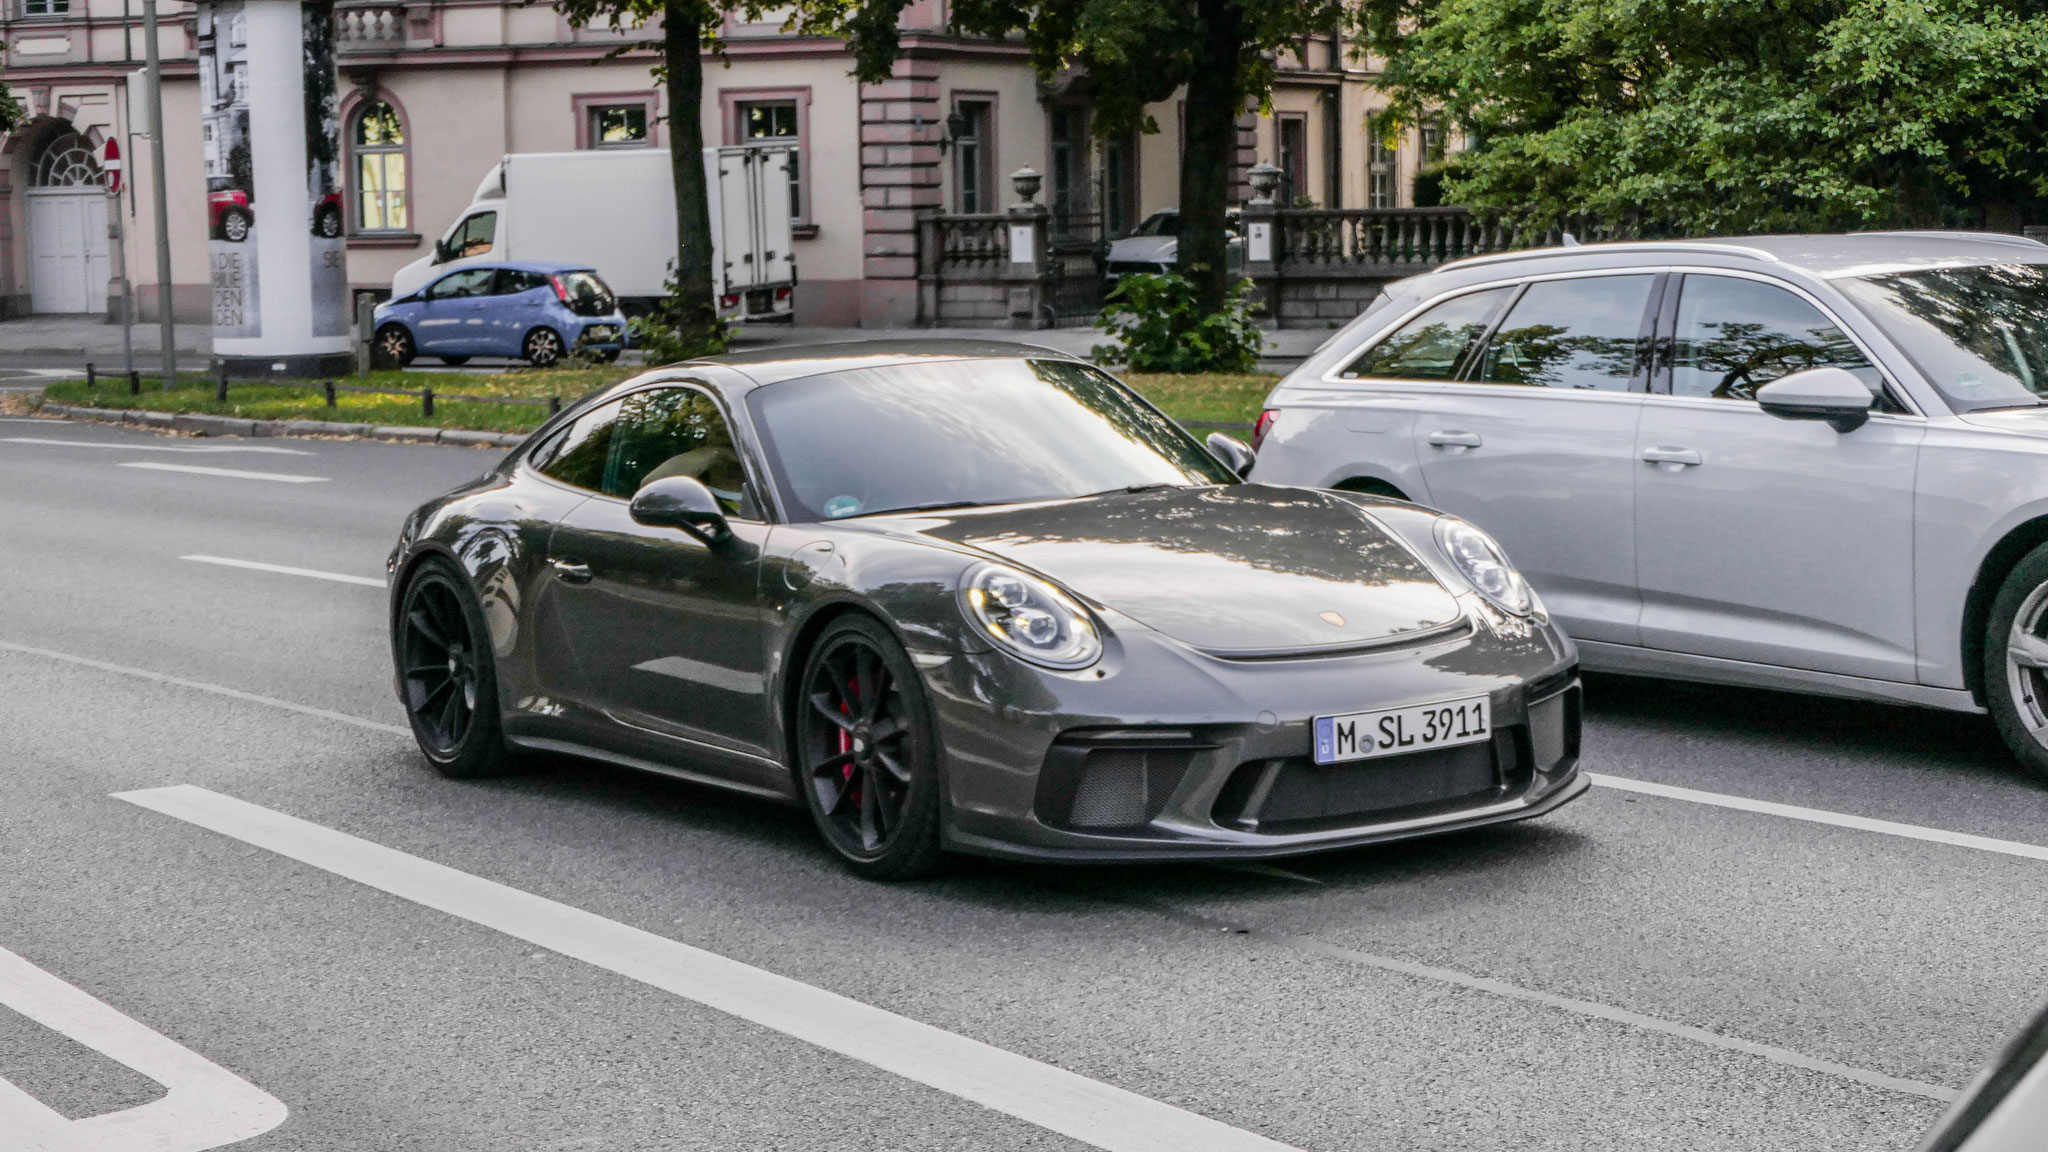 Porsche 991 GT3 Touring Package - M-SL-3911